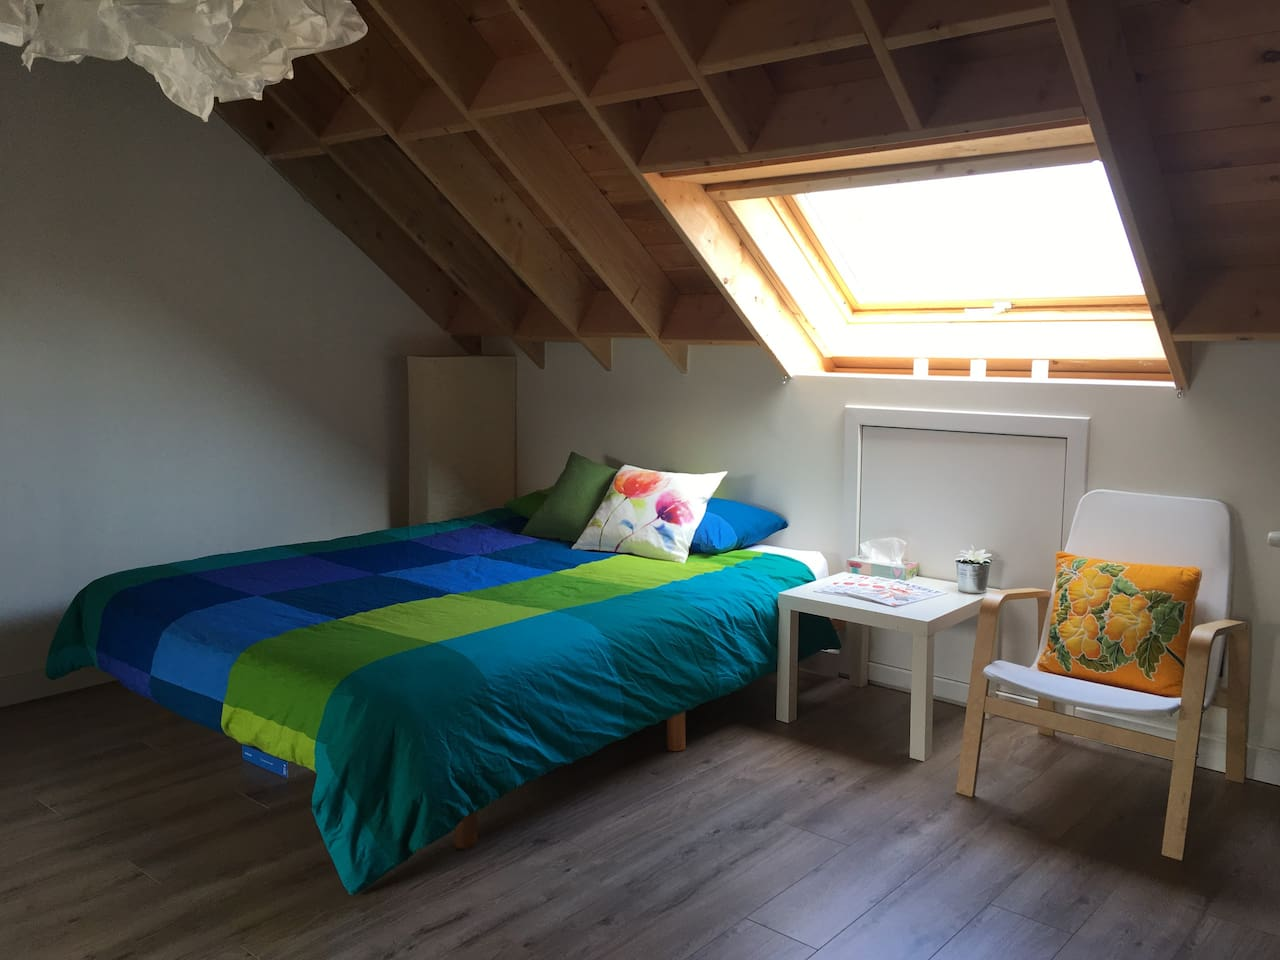 Queen-size bed and skylight